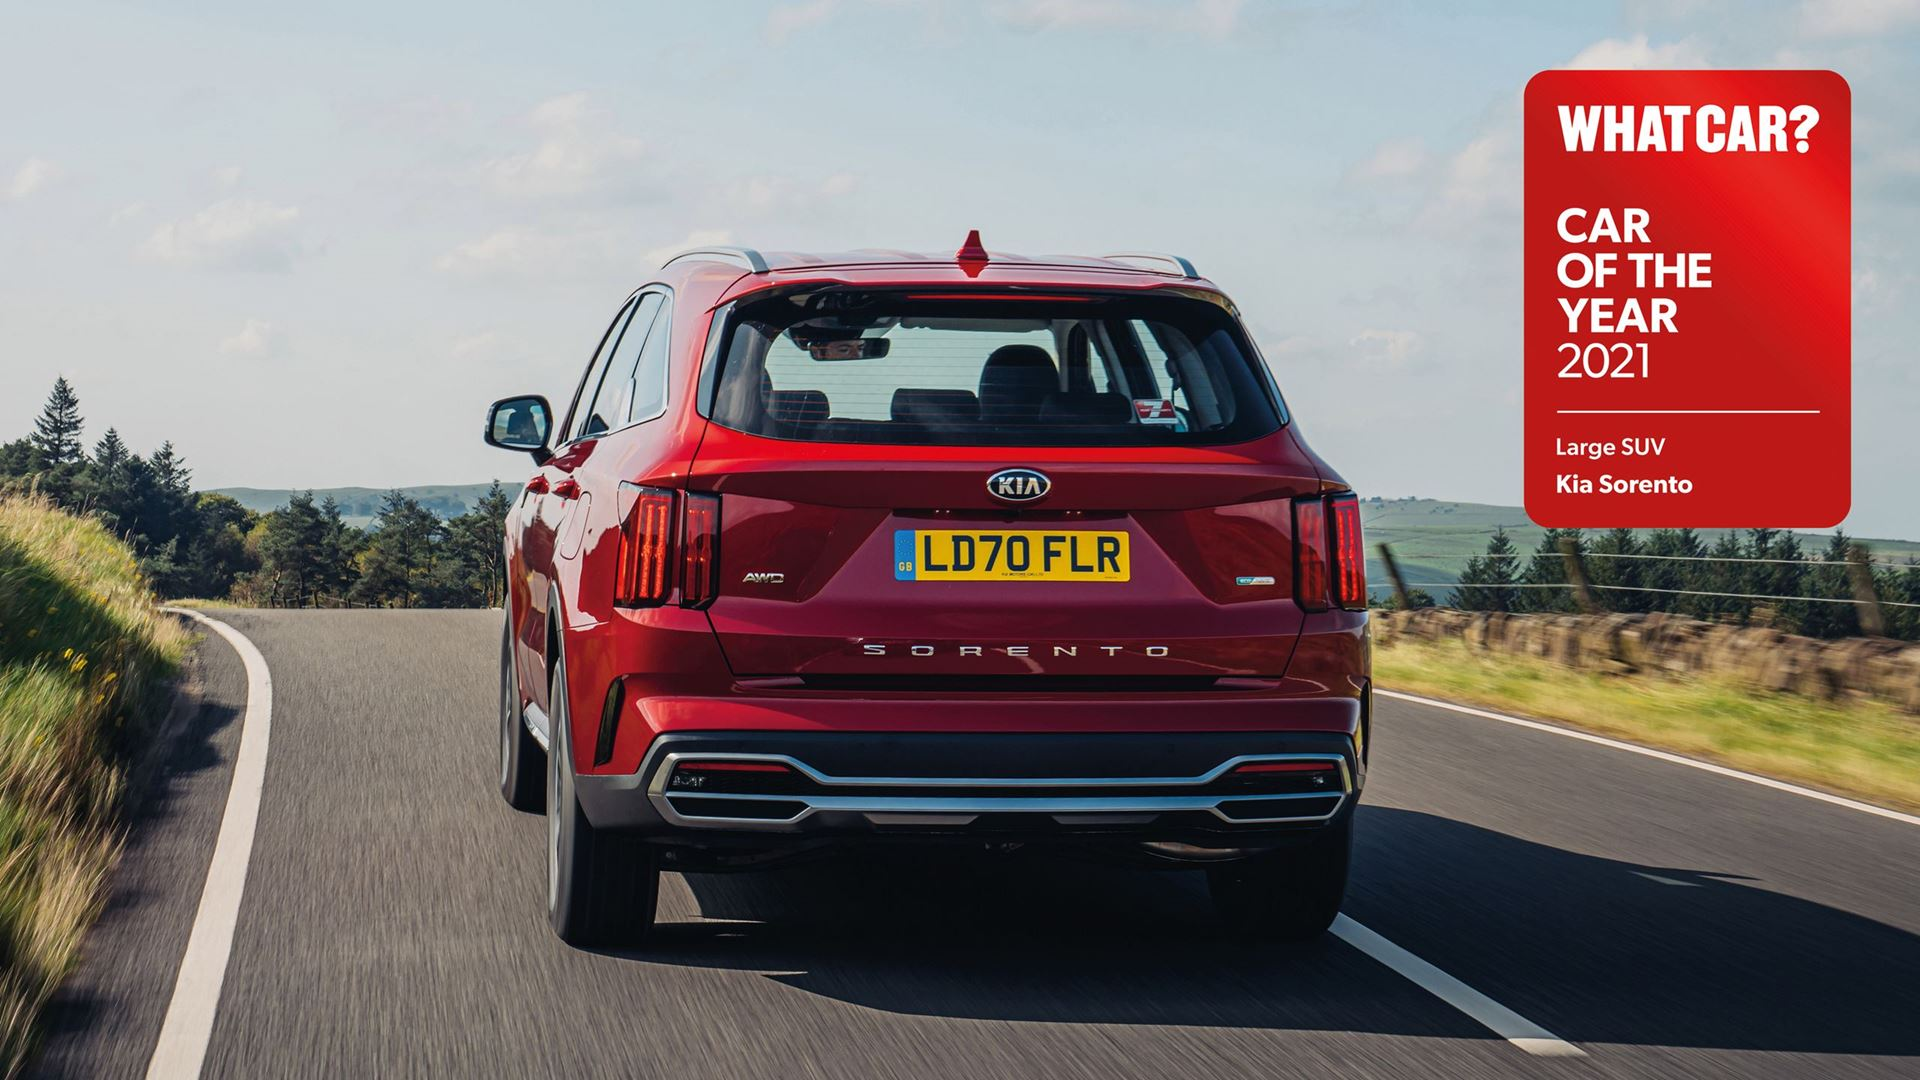 All-new Sorento wins 'Large SUV of the year' at 2021 What Car? Car Of The Year awards - Image 7